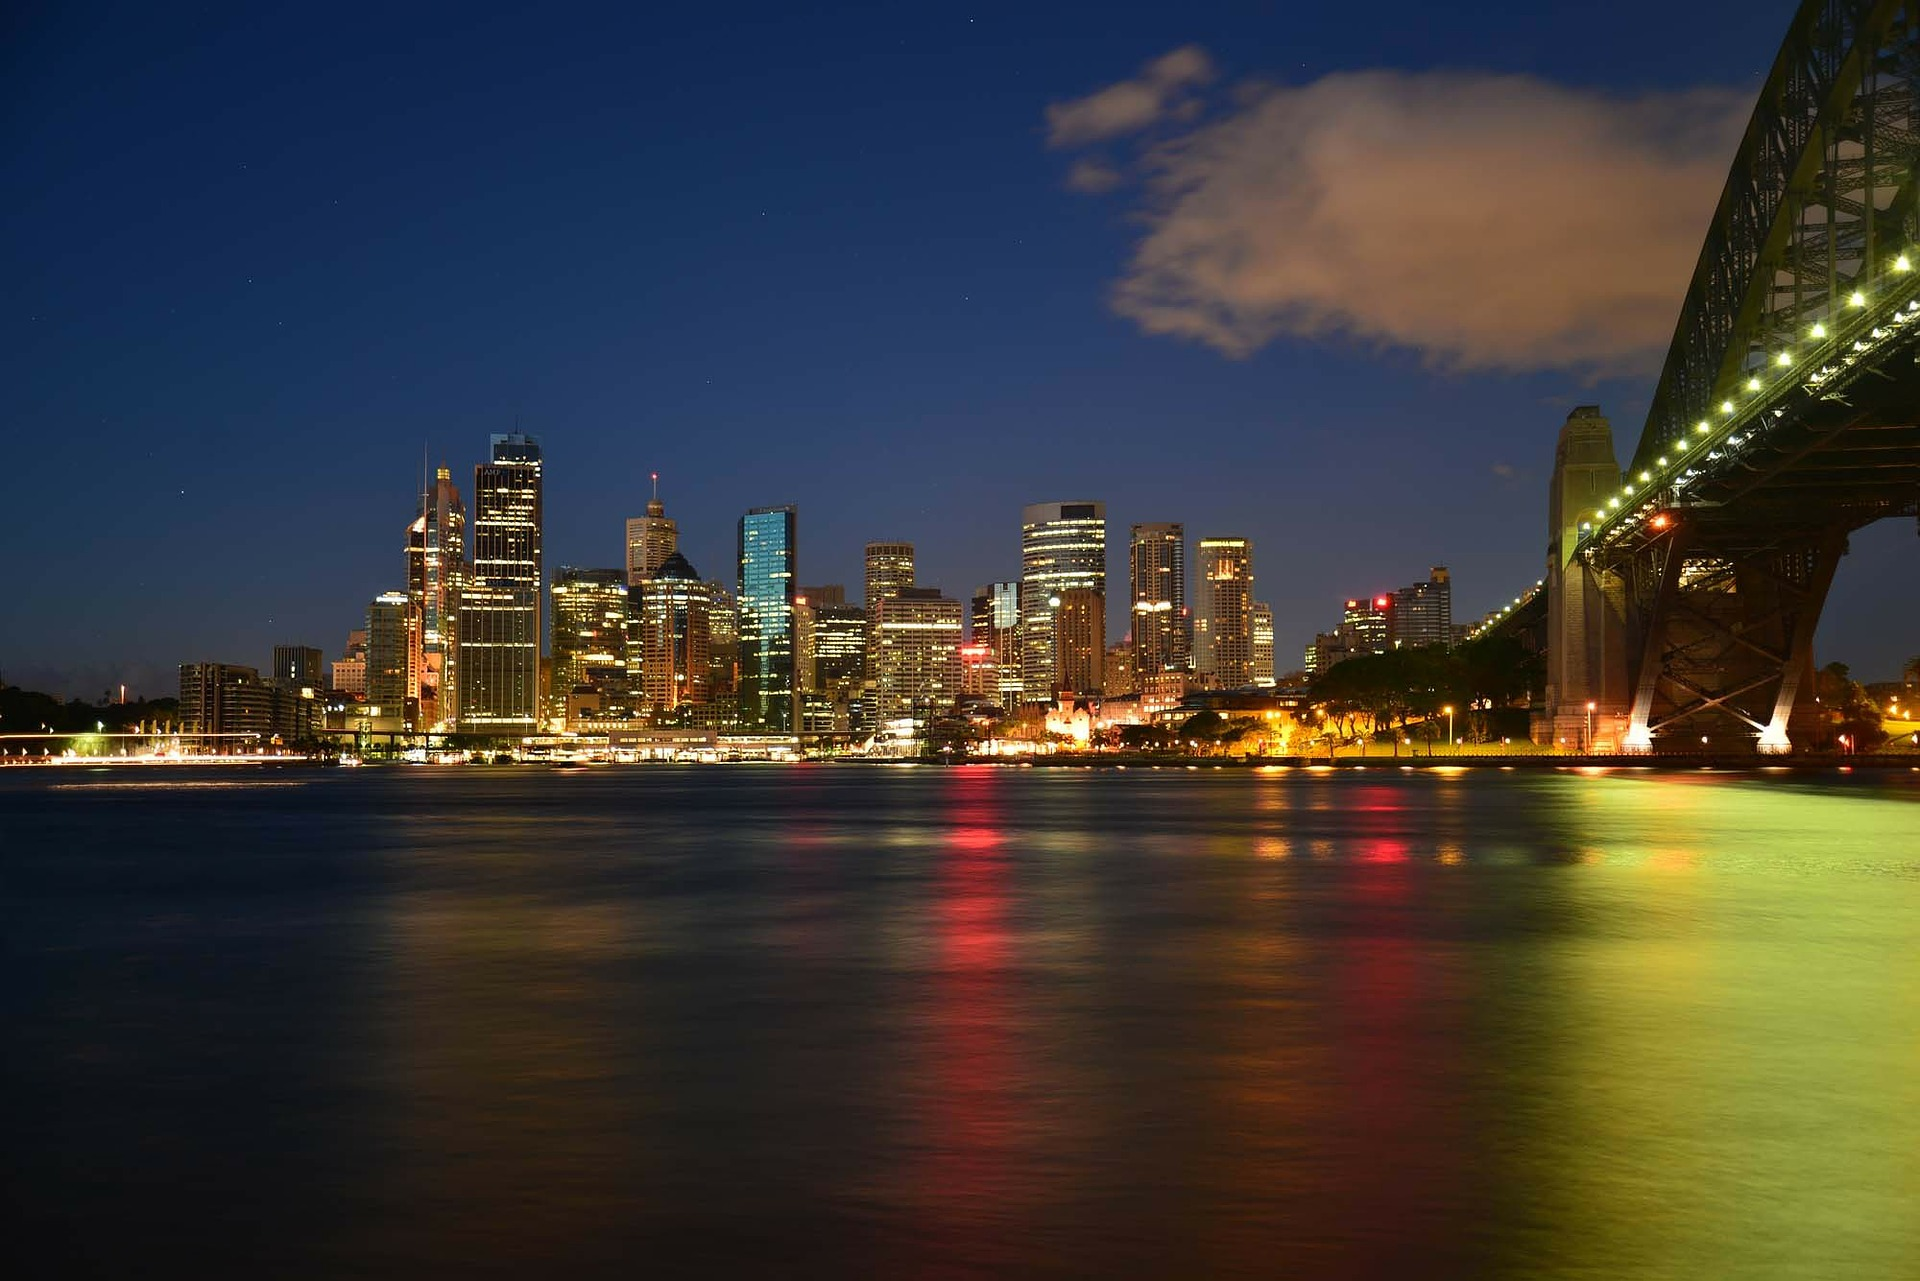 Sydney Harbour - Milsons Point